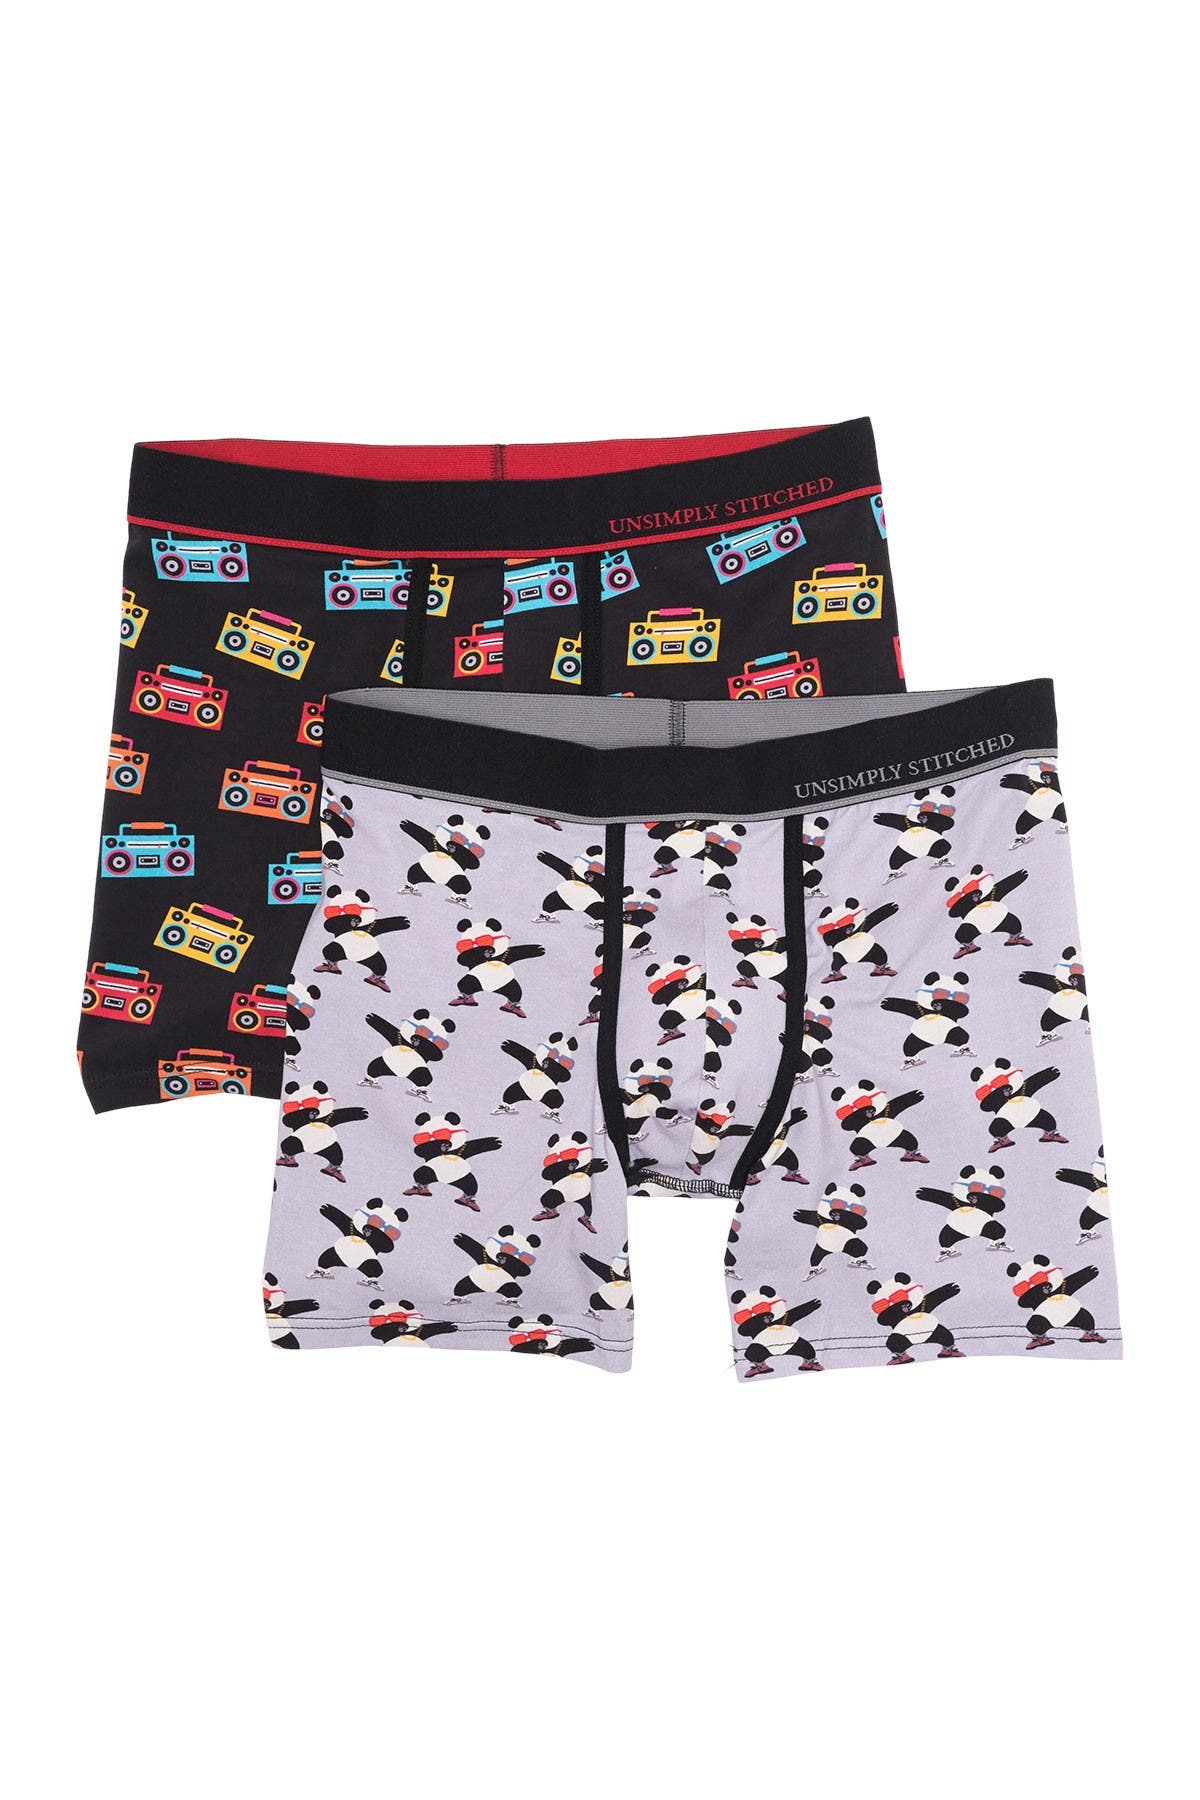 Image of Unsimply Stitched Printed Boxer Briefs - Pack of 2